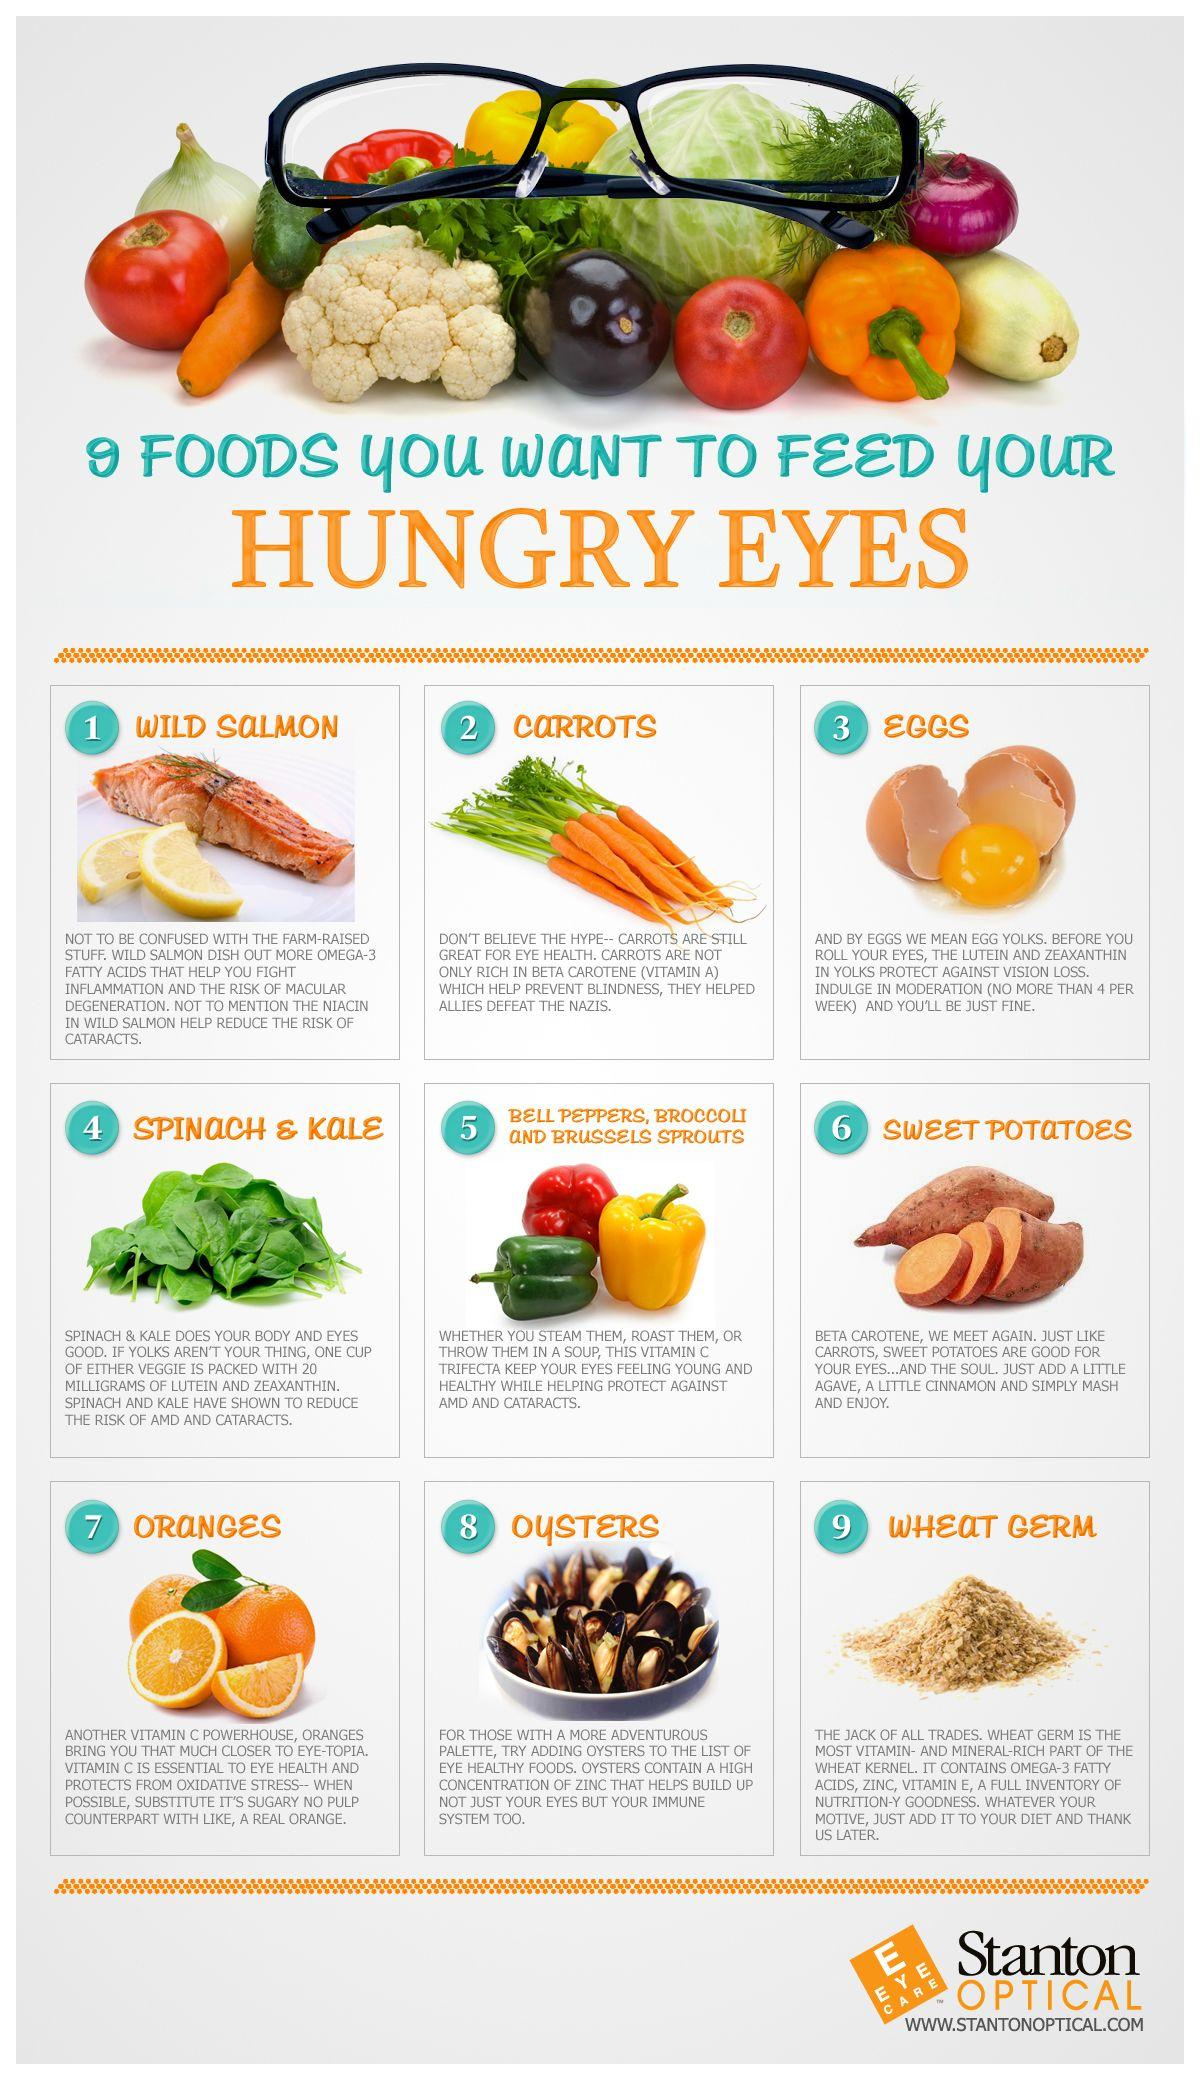 Winter Nutrition For Seniors - Foods For Healthy Eyes Graphic